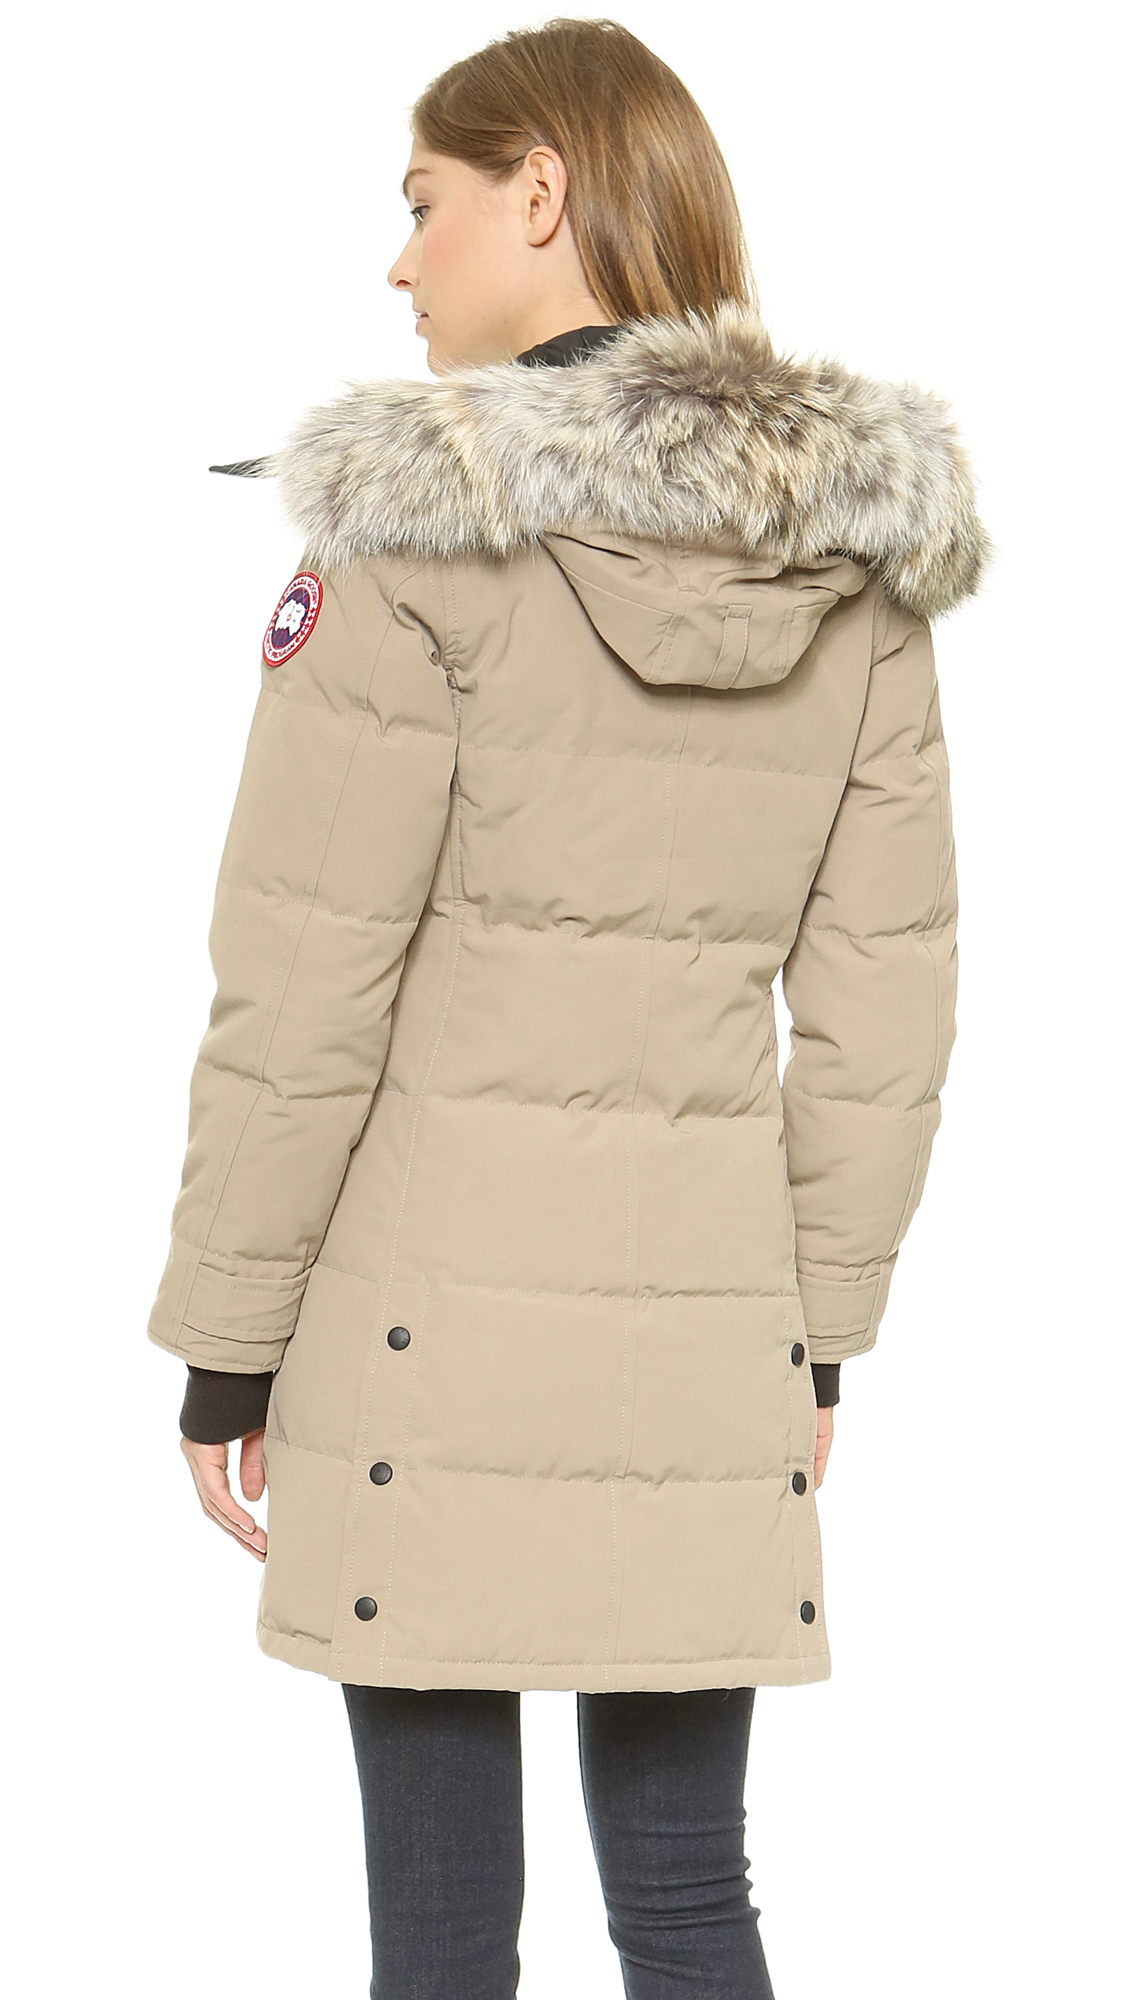 Image 4 of Canada Goose Shelburne Parka in Ink Blue